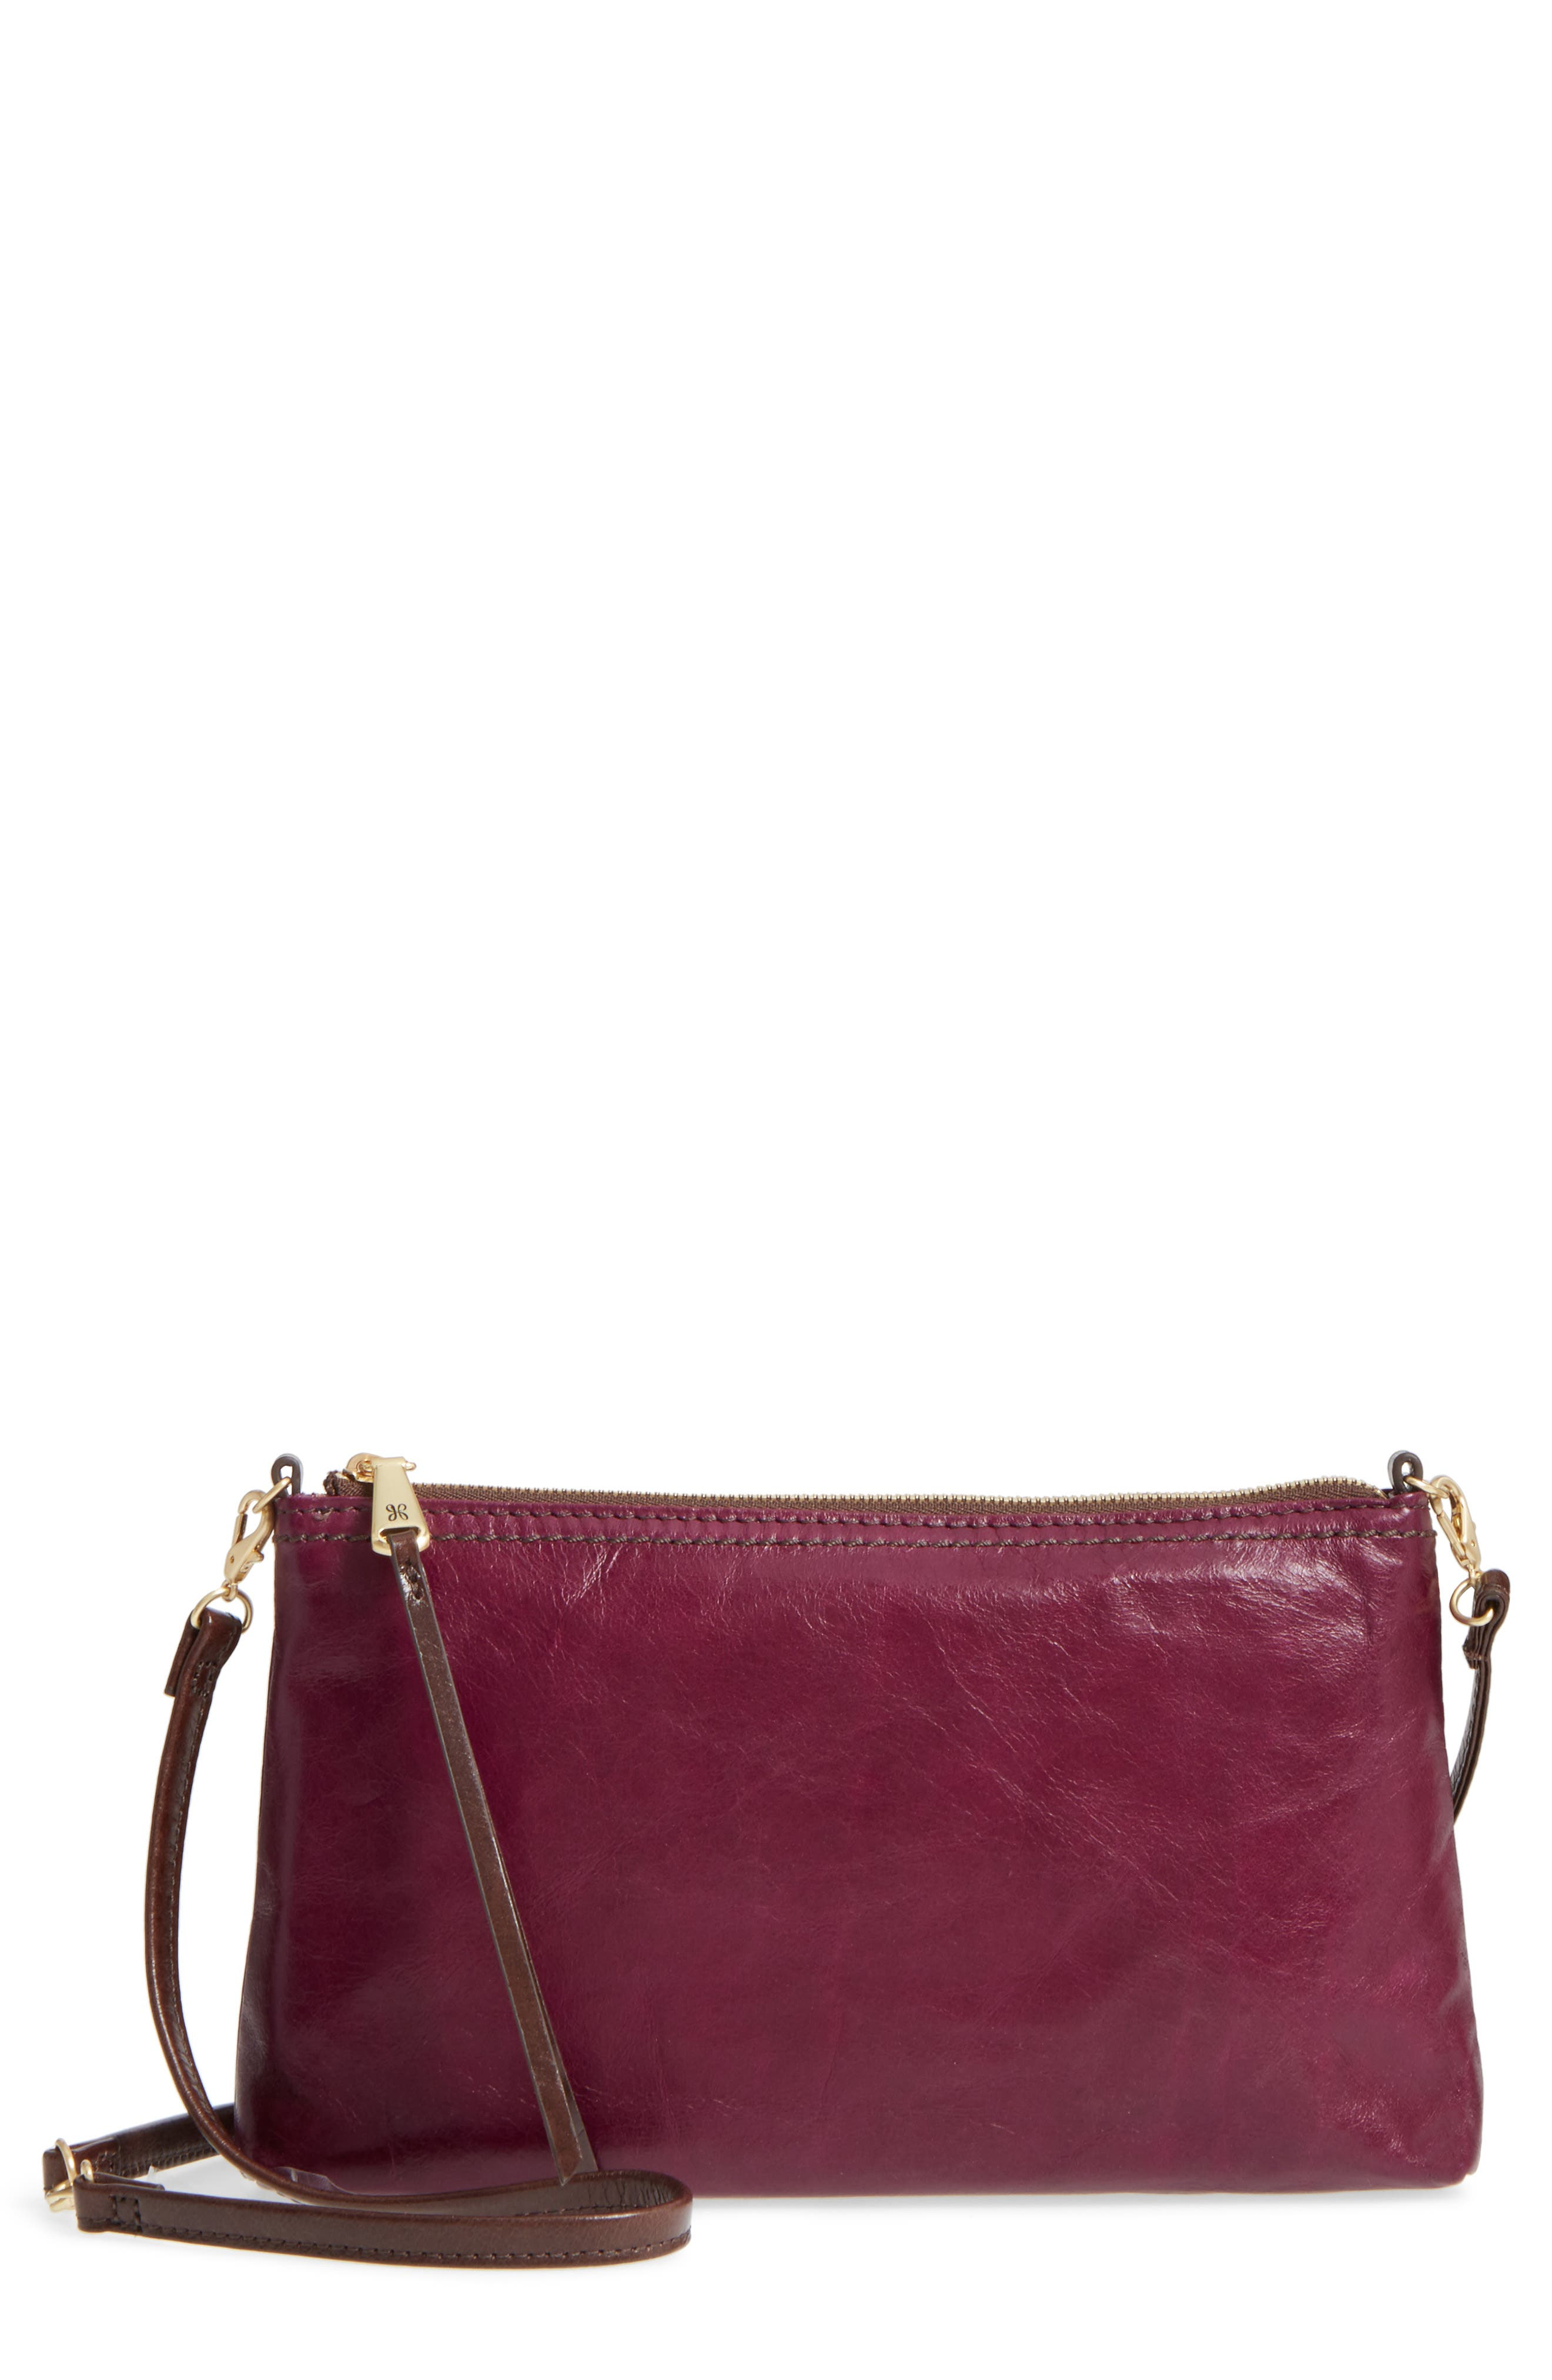 'Darcy' Leather Crossbody Bag,                             Main thumbnail 6, color,